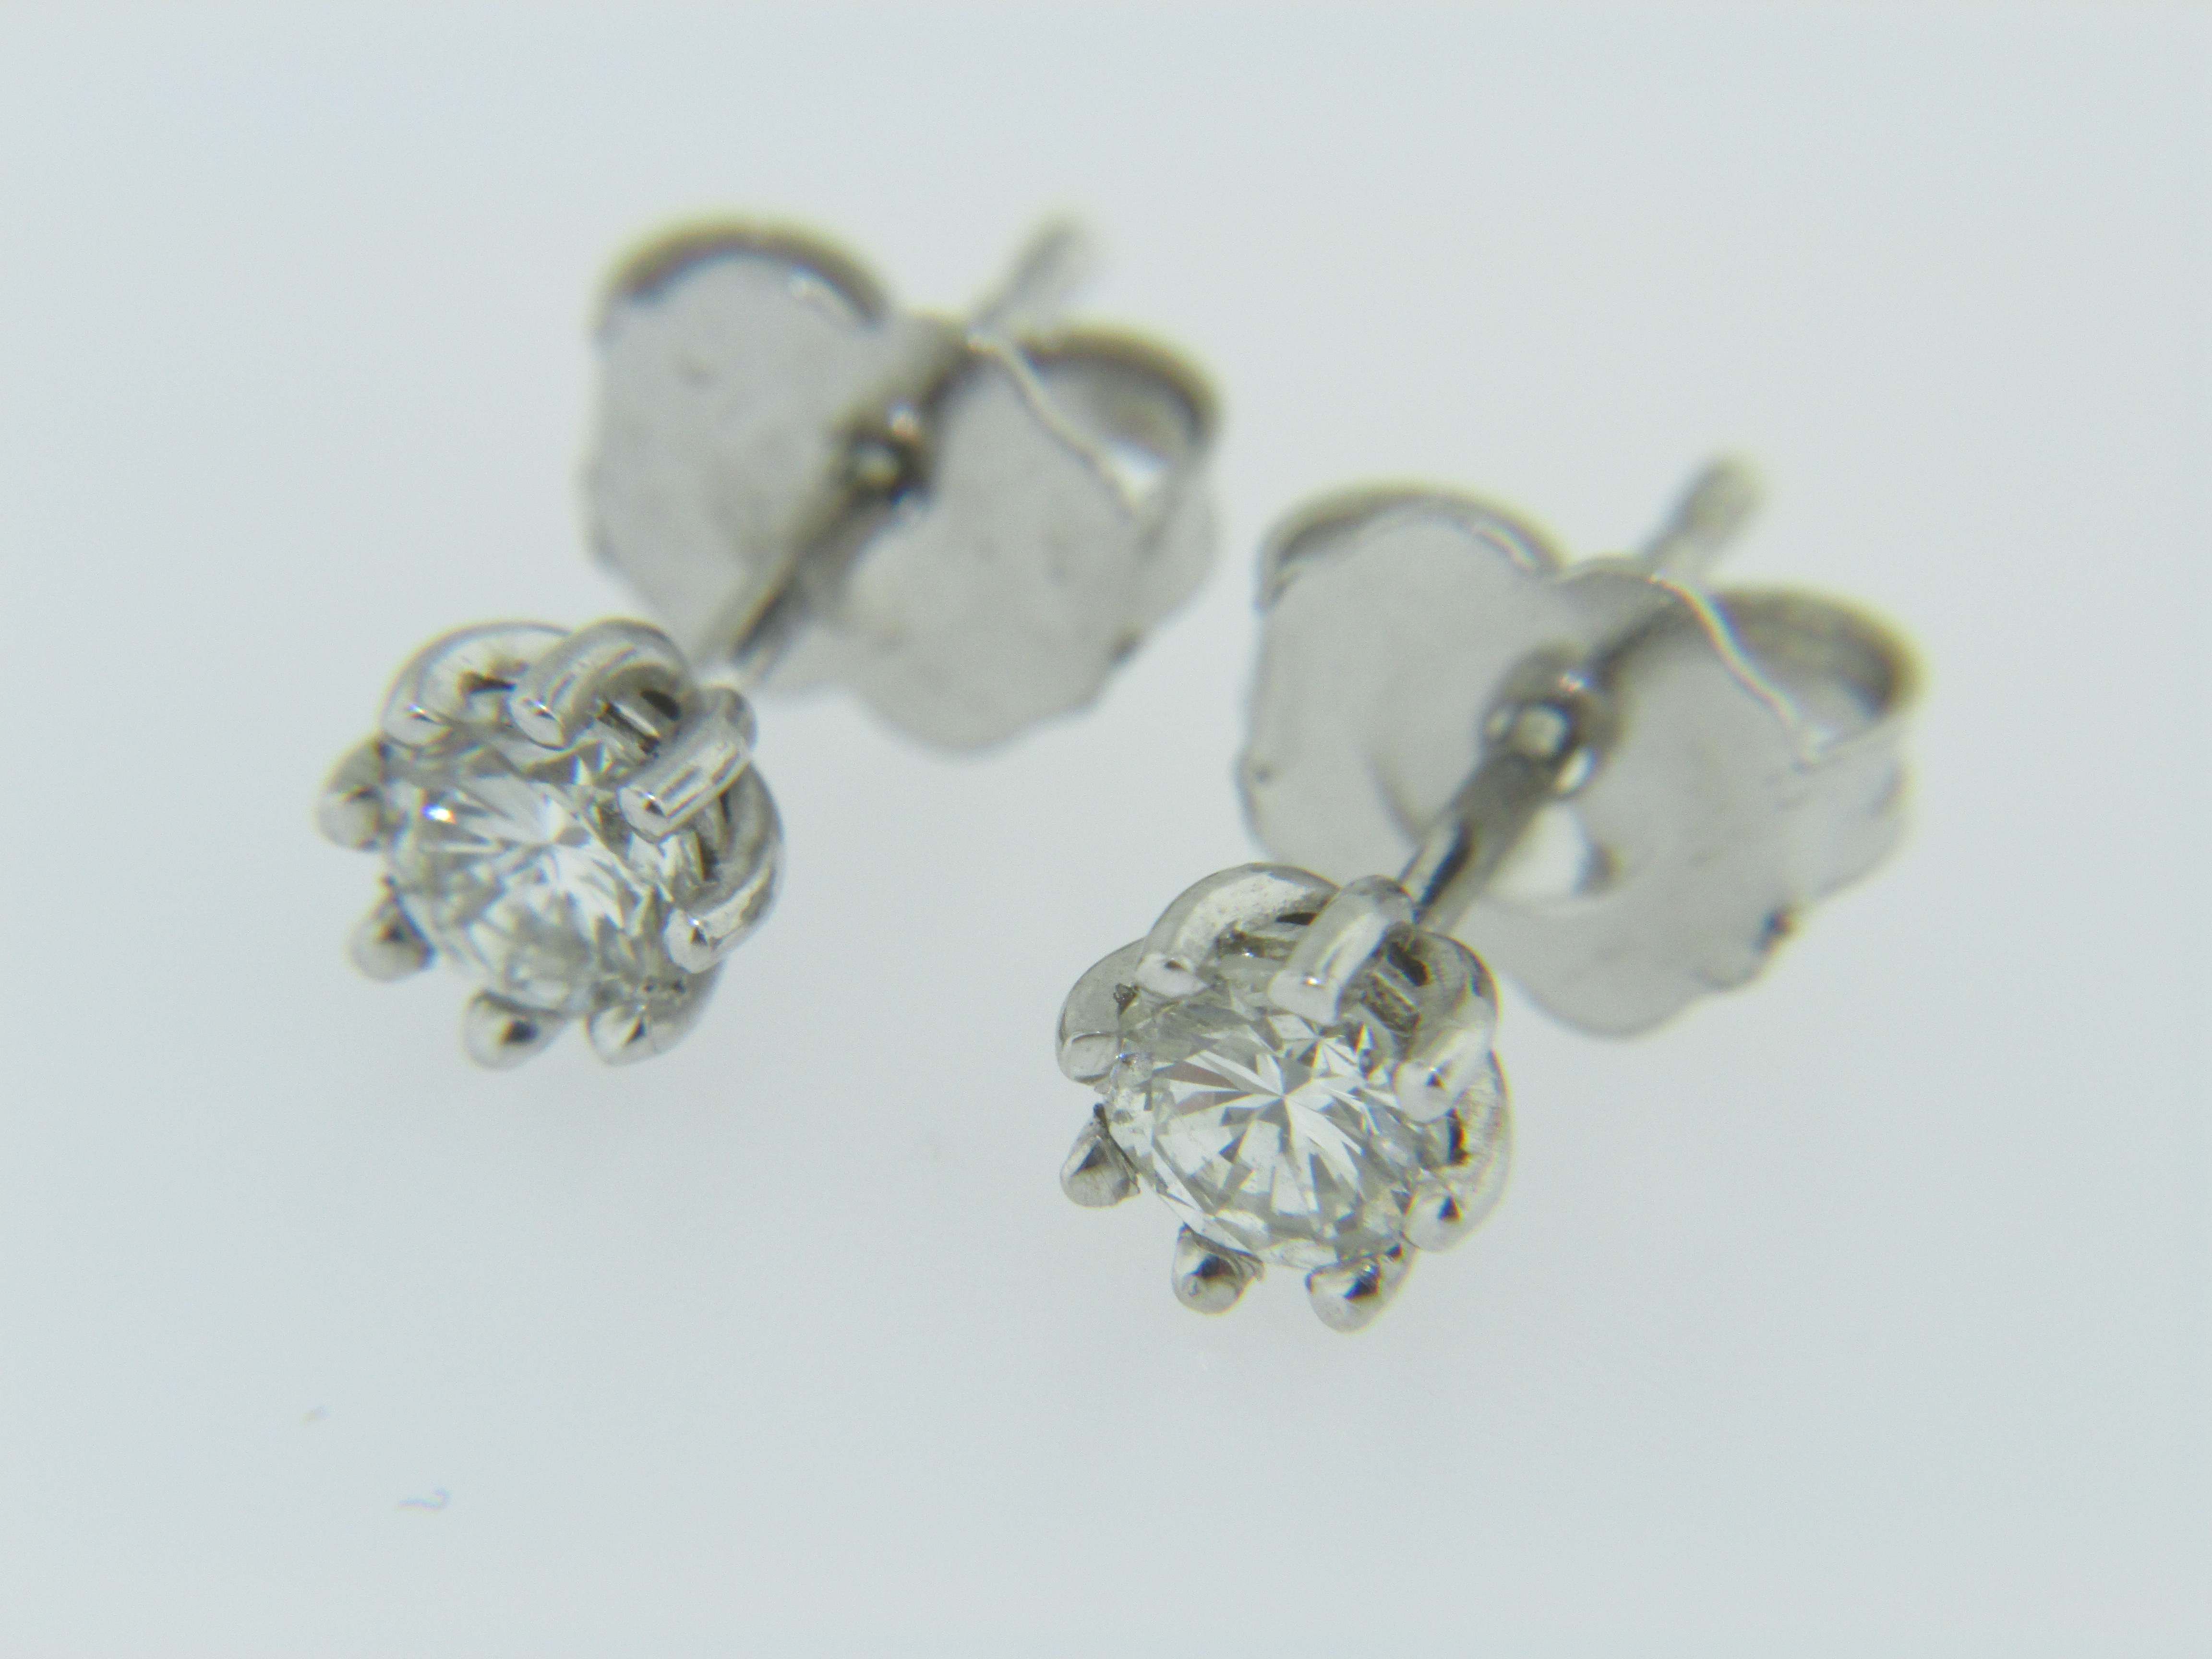 **sold**this Is A Stunning Pair Of Timeless 032ctw Round Diamond 8 Prong  Stud Earrings In 14k White Gold Very Fine The Pair Weighs 07 Grams